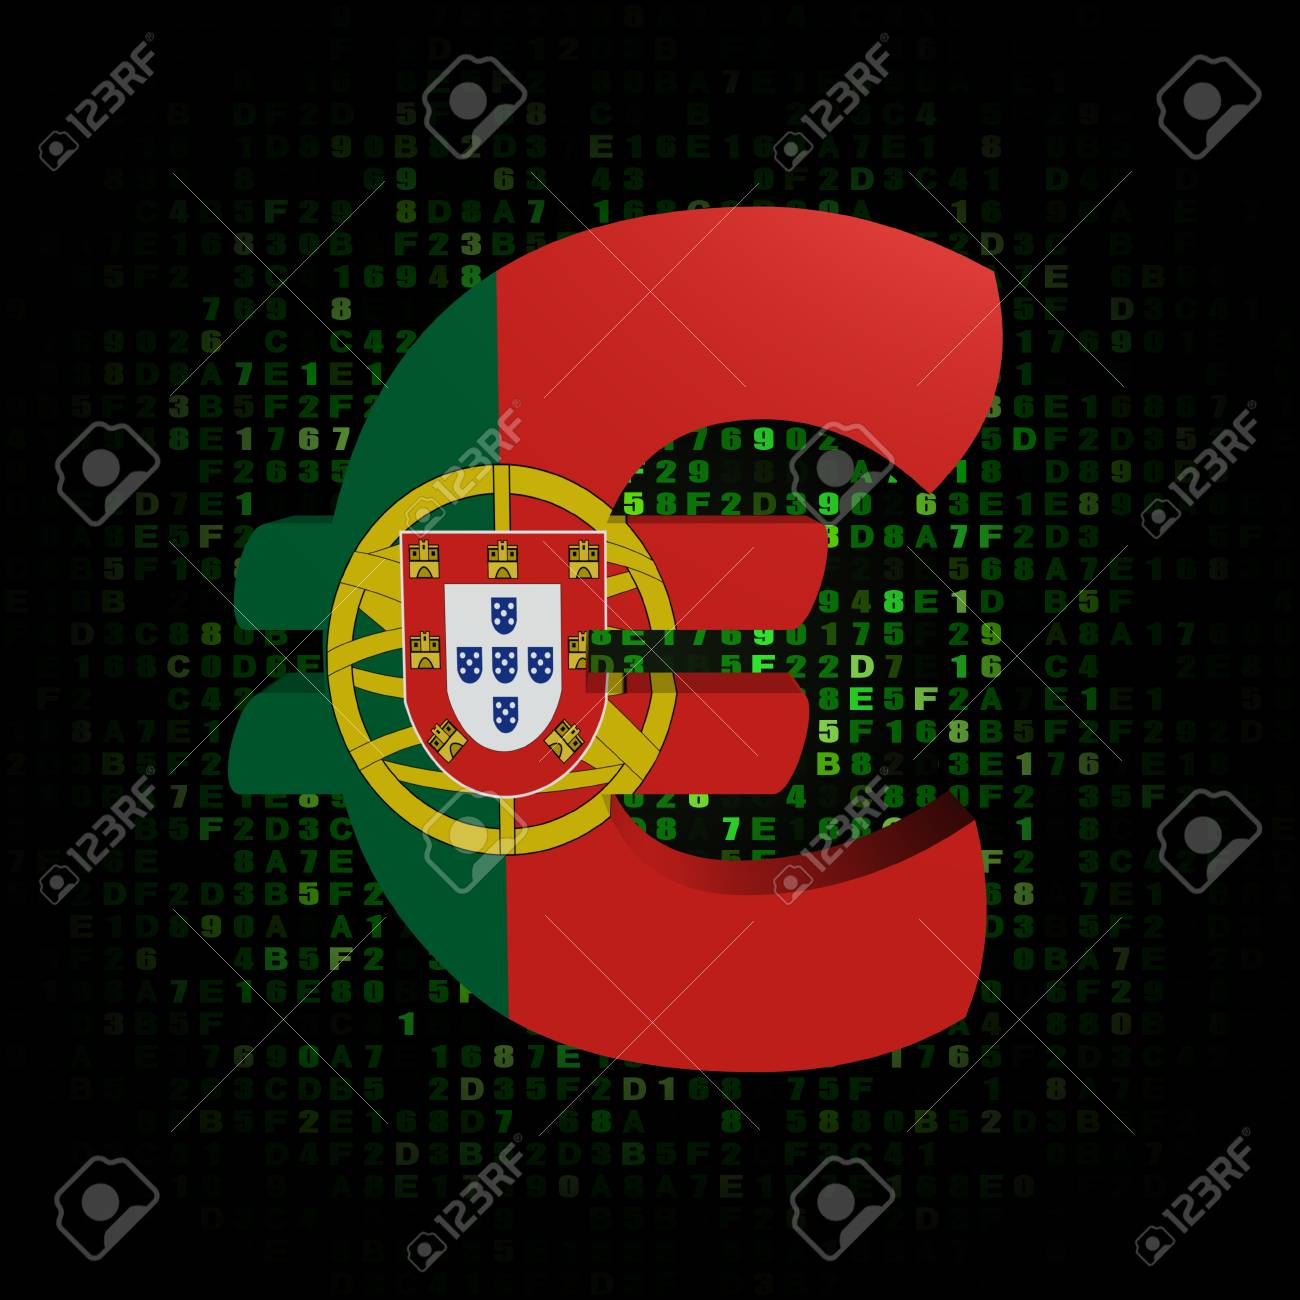 Euro Symbol With Portugal Flag On Hex Code Illustration Stock Photo